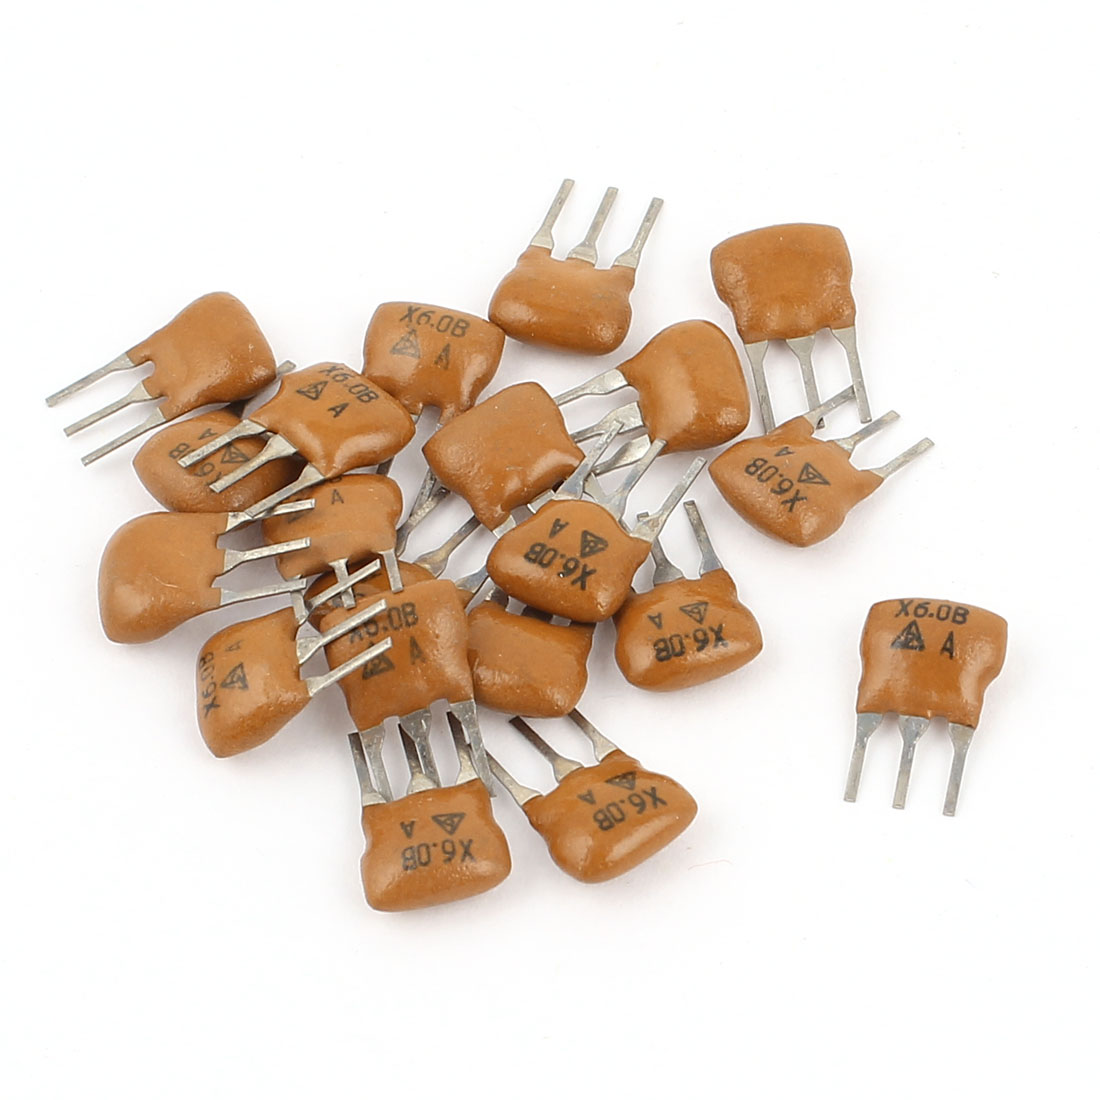 20 Pcs Radial Lead 3 Pole Ceramic Filters Crystal Resonators X6.0B 6MHz Frequency